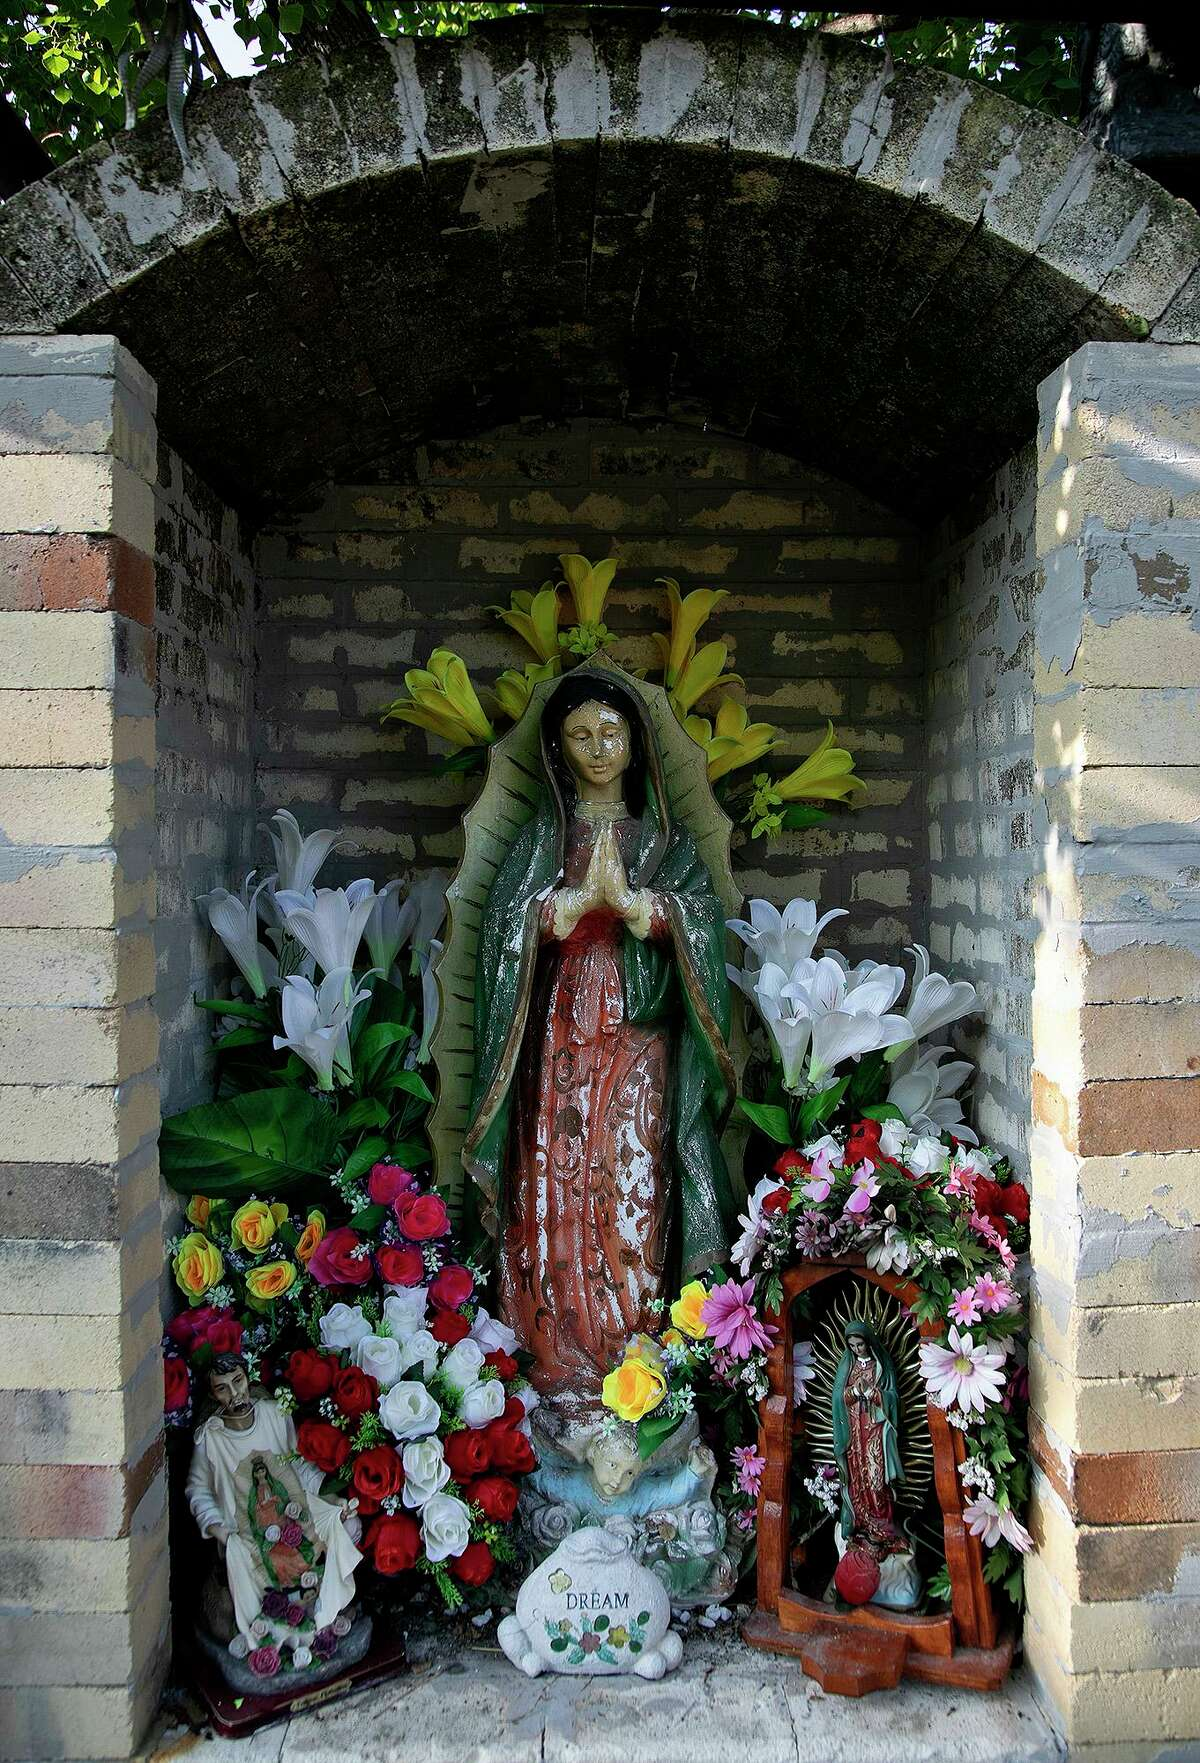 Vanessa Martinez's Virgen de Guadalupe yard shrine at her home in San Antonio is made from an old furnace.